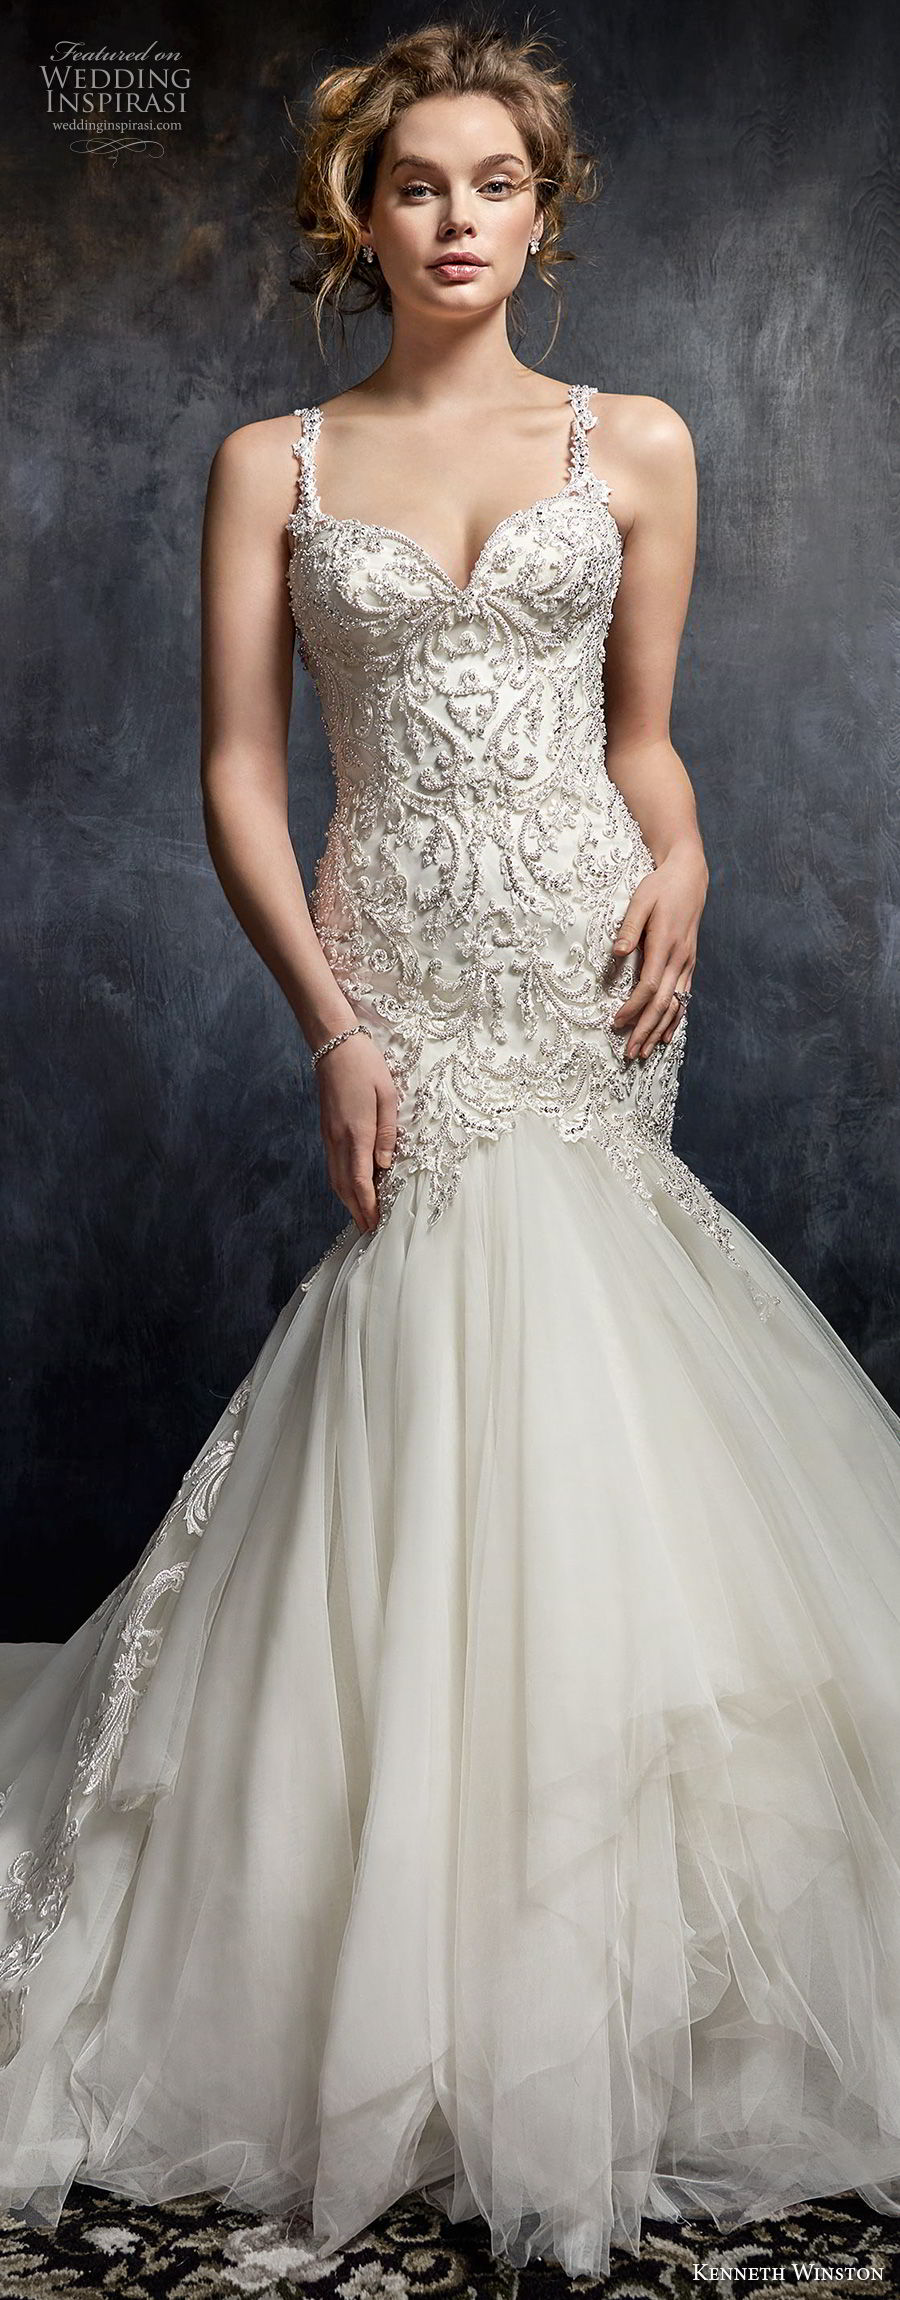 kenneth winston fall 2017 bridal thin strap sweetheart neckline heavily embellished beaded bodice glamorous elegant mermaid wedding dress open back chapel train (53) mv